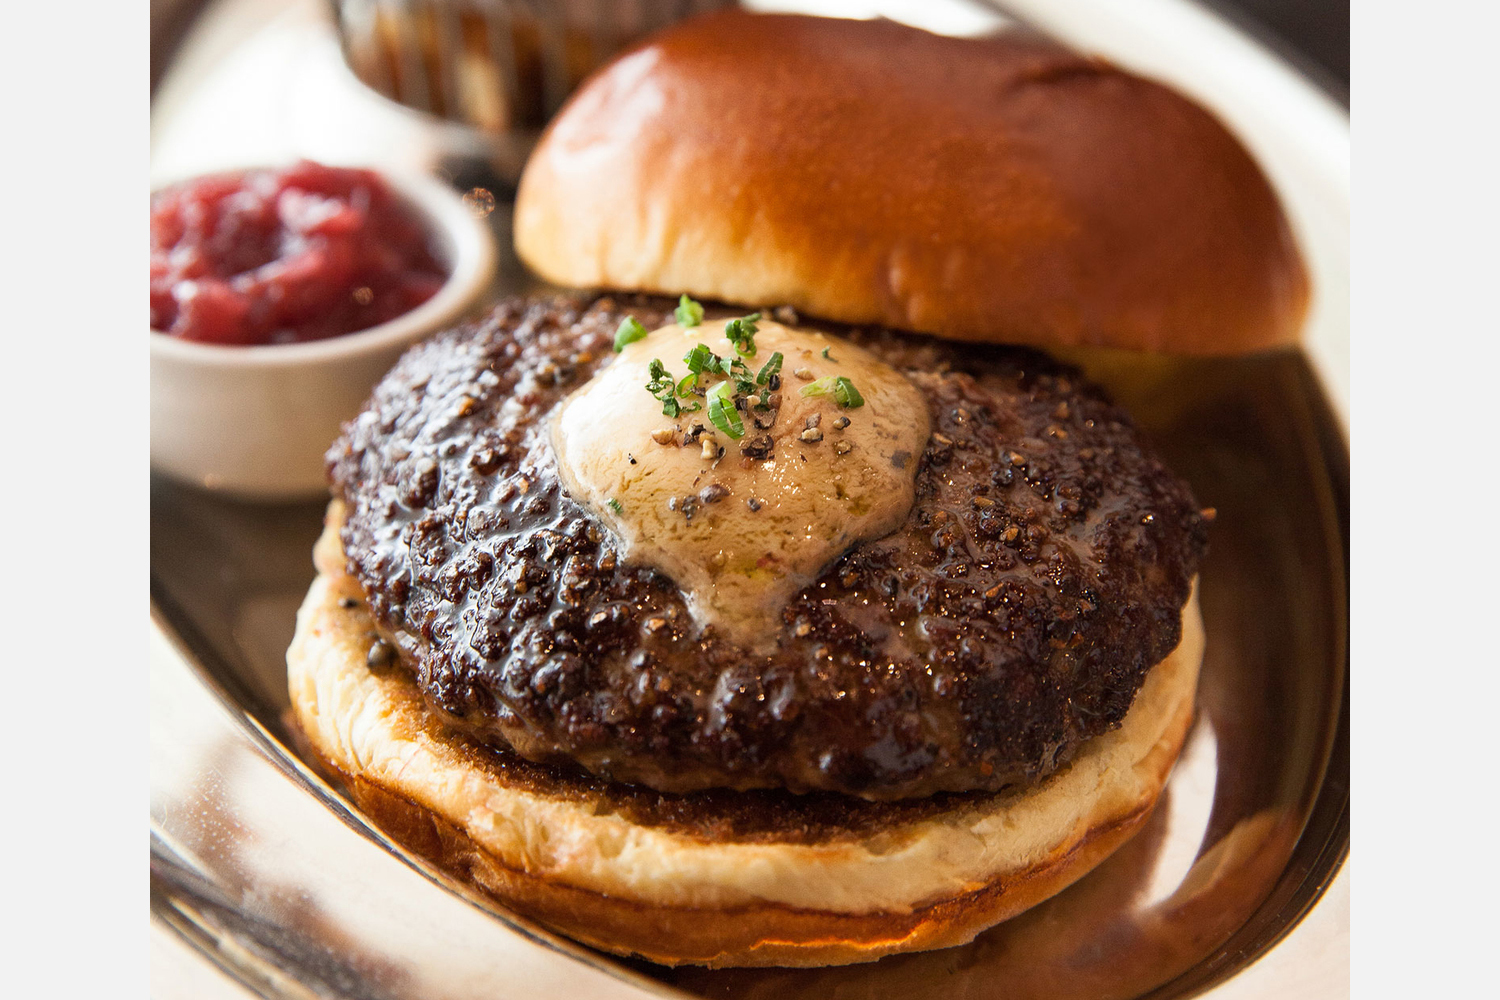 Black Truffle Burger at RPM Steak